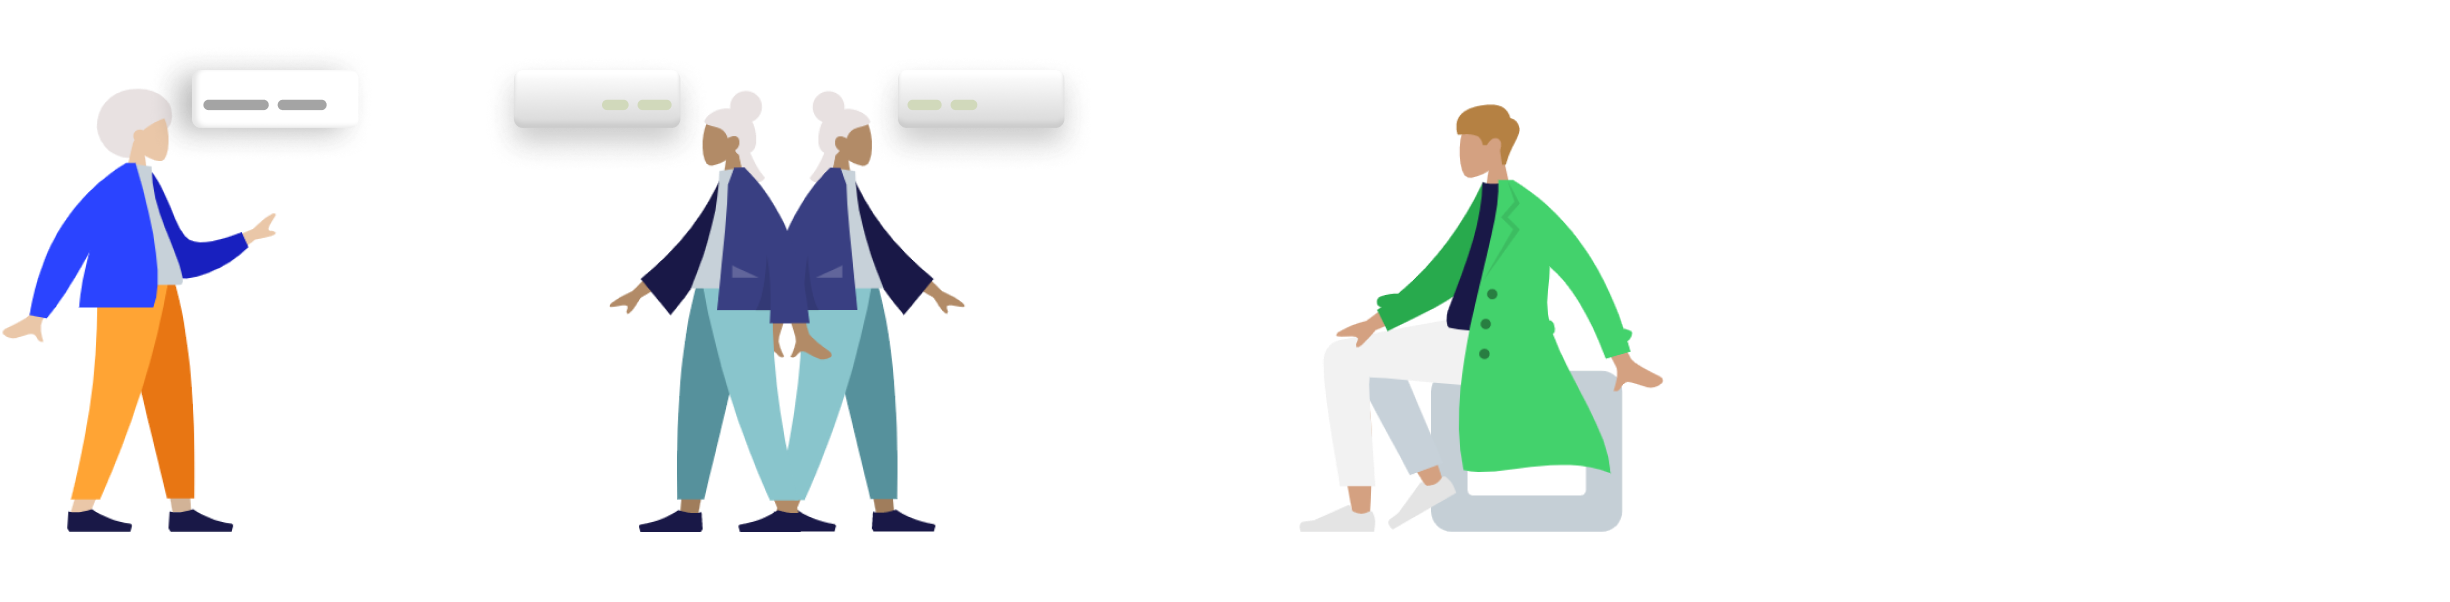 Section Graphic. Describes the sales process